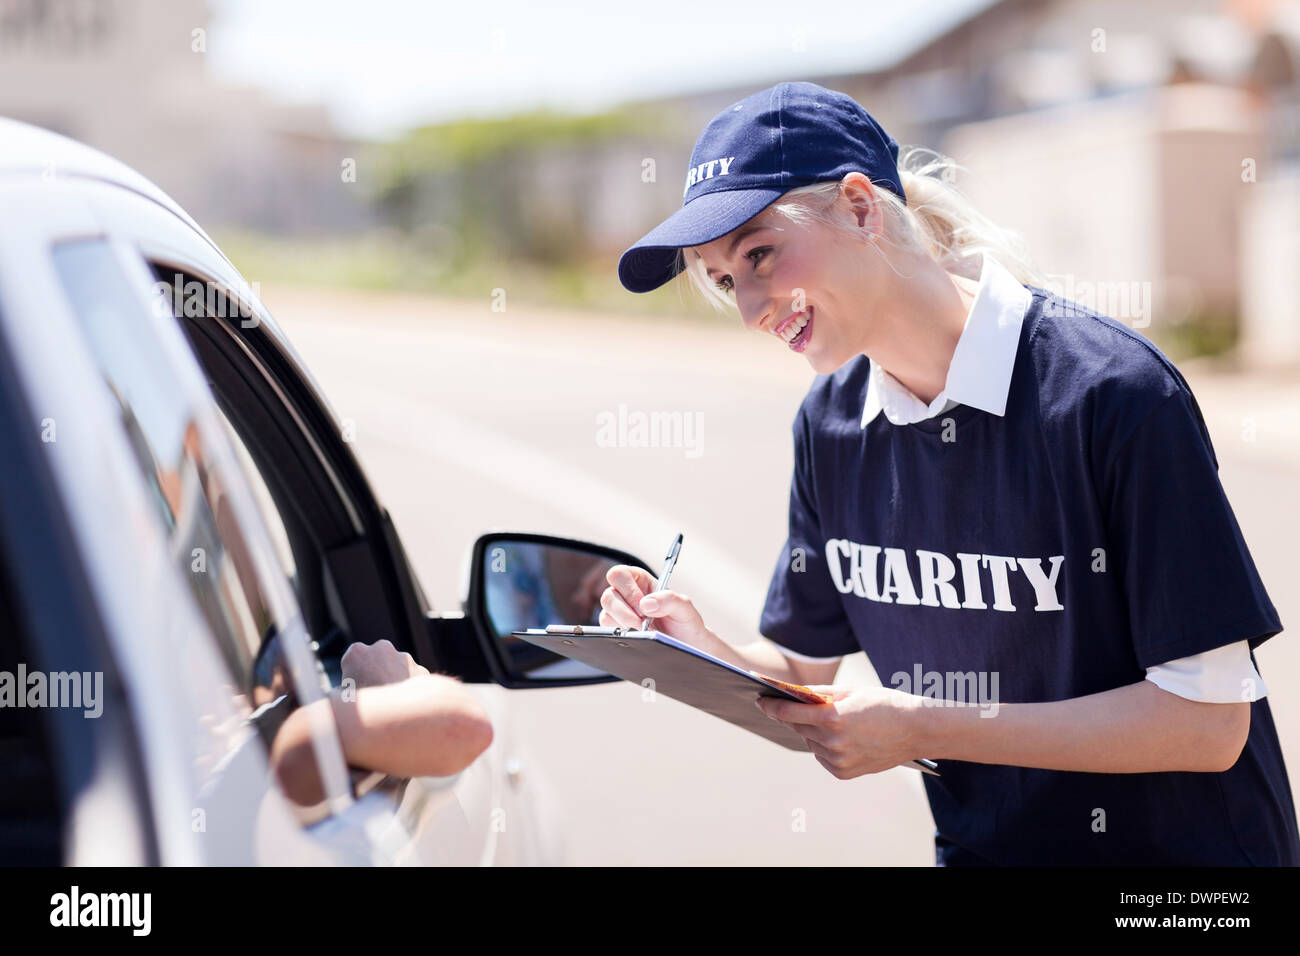 cheerful volunteer raising money for charity on street - Stock Image